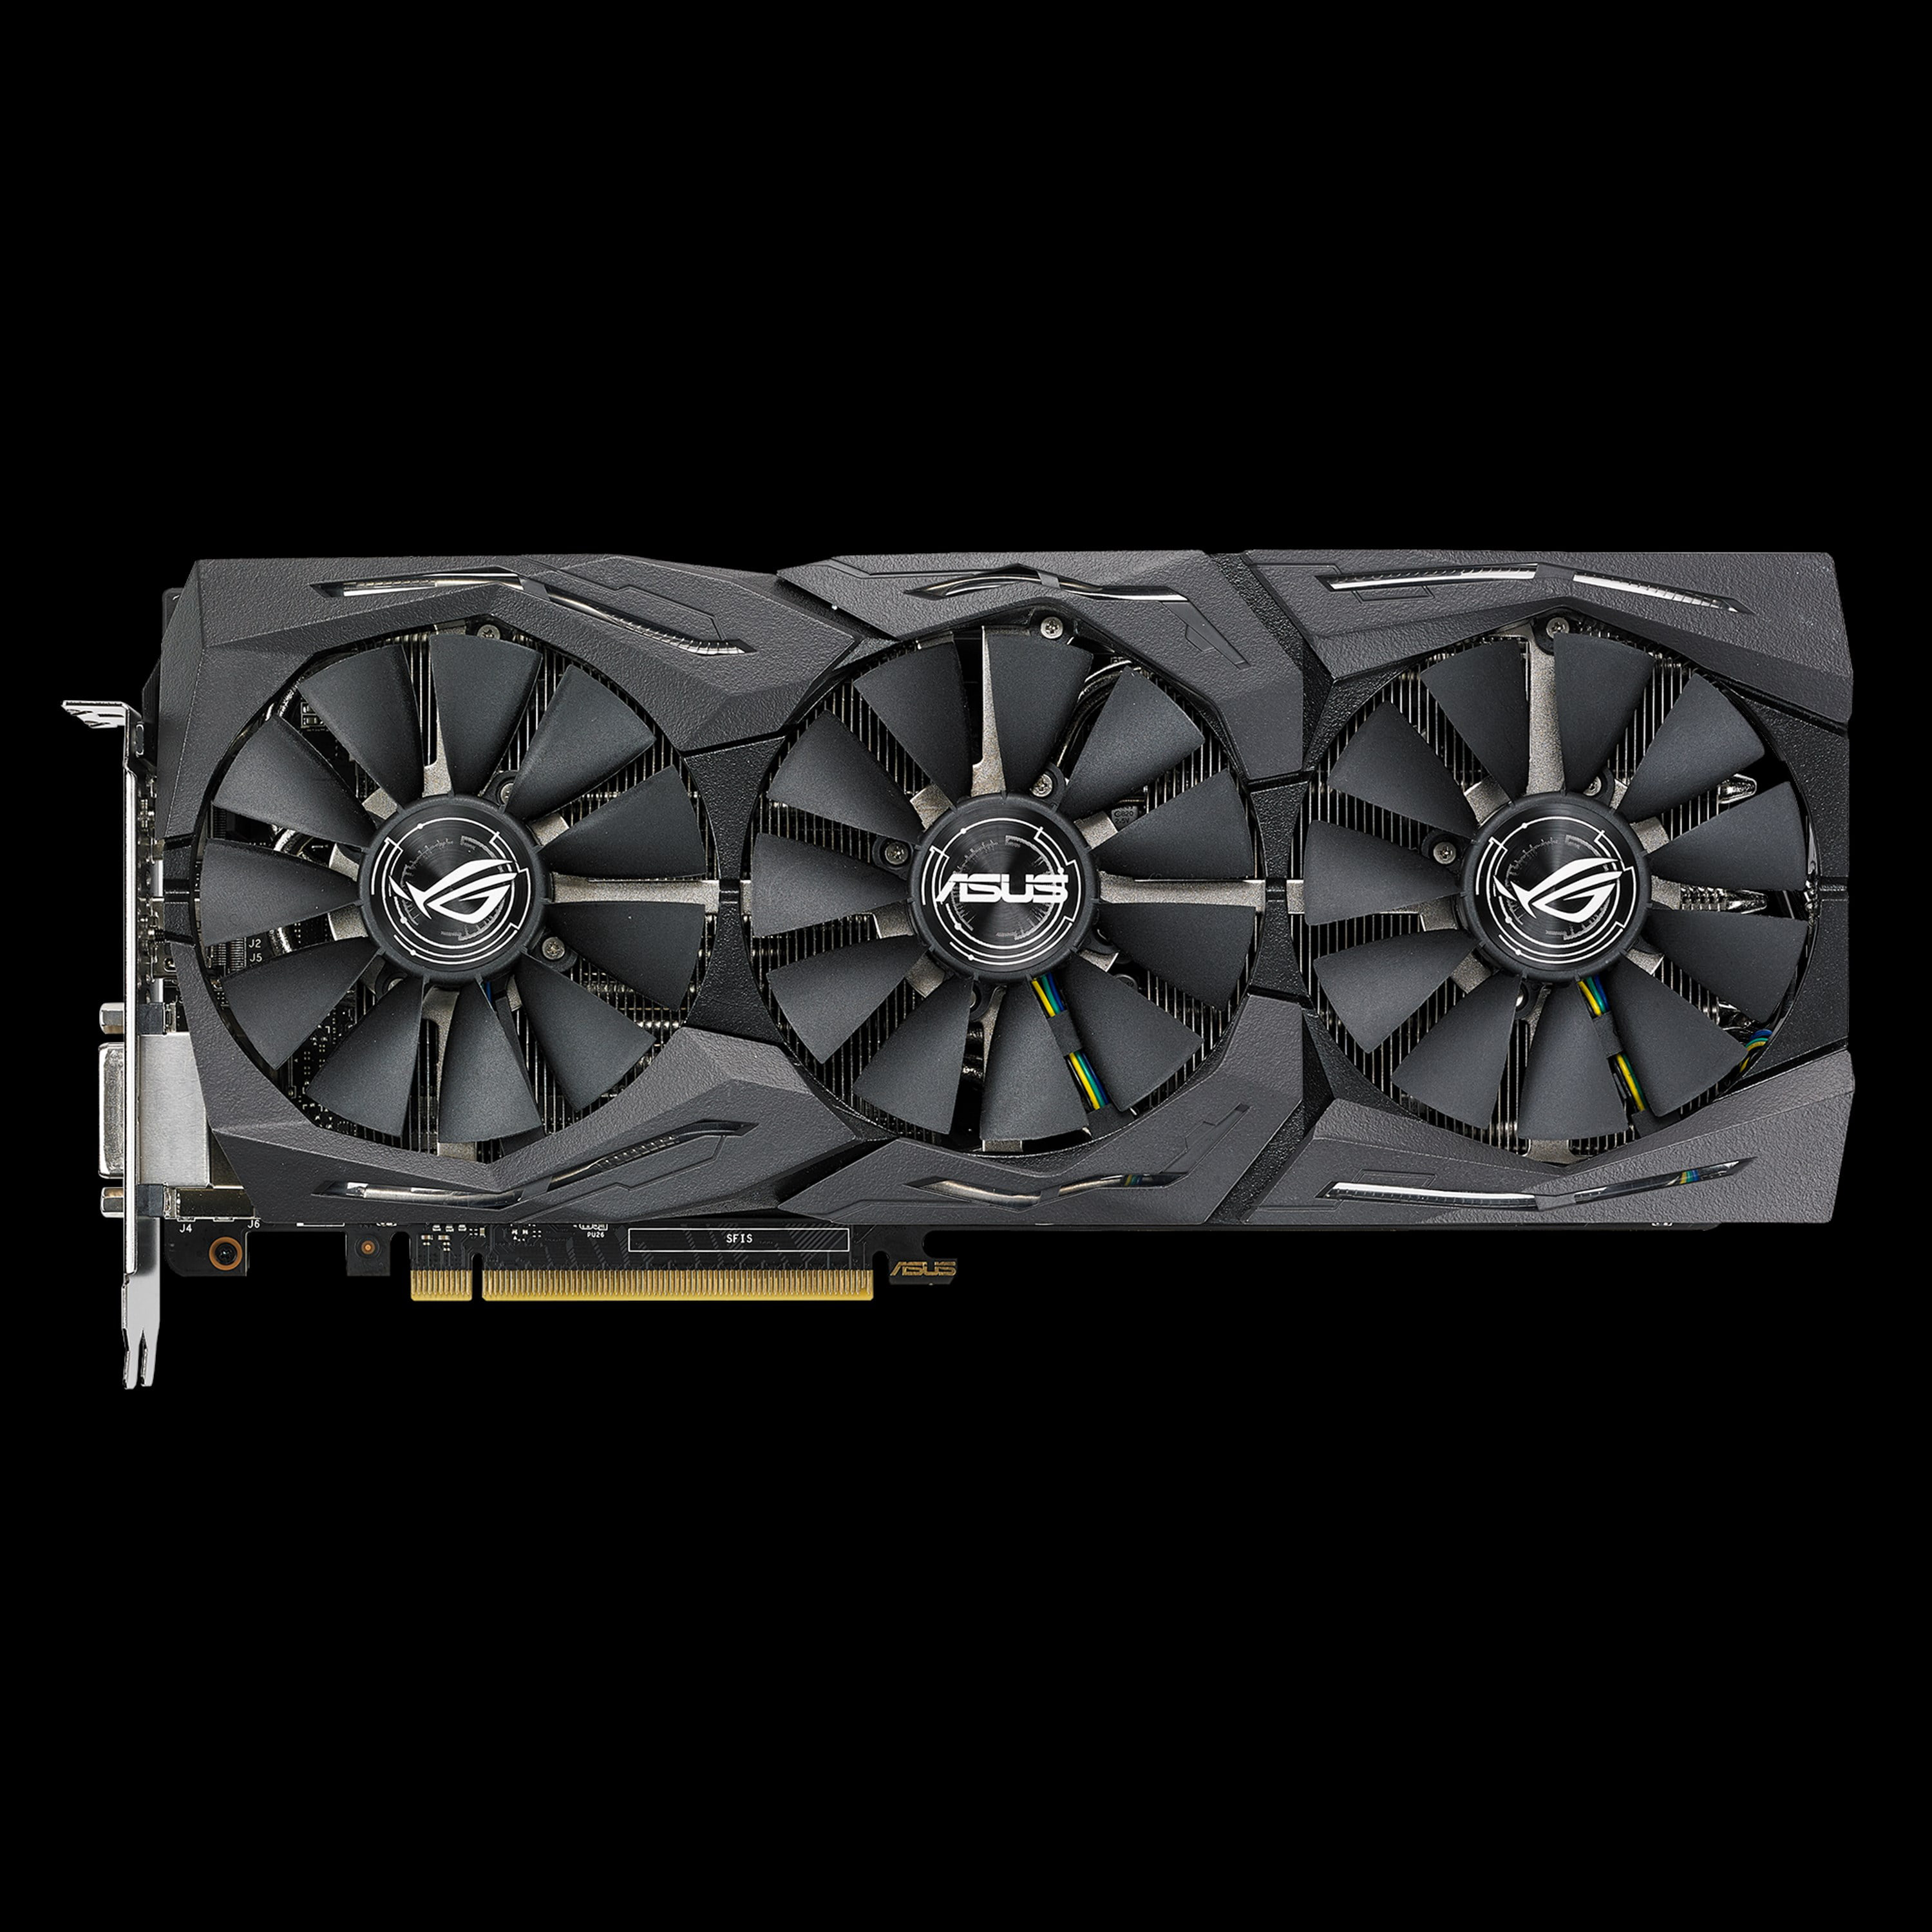 Asus Rog-Strix-Gtx1080Ti-O11G-Gaming Graphics Card ROG-STRIX-GTX1080TI-O11G-GAMING by ASUS